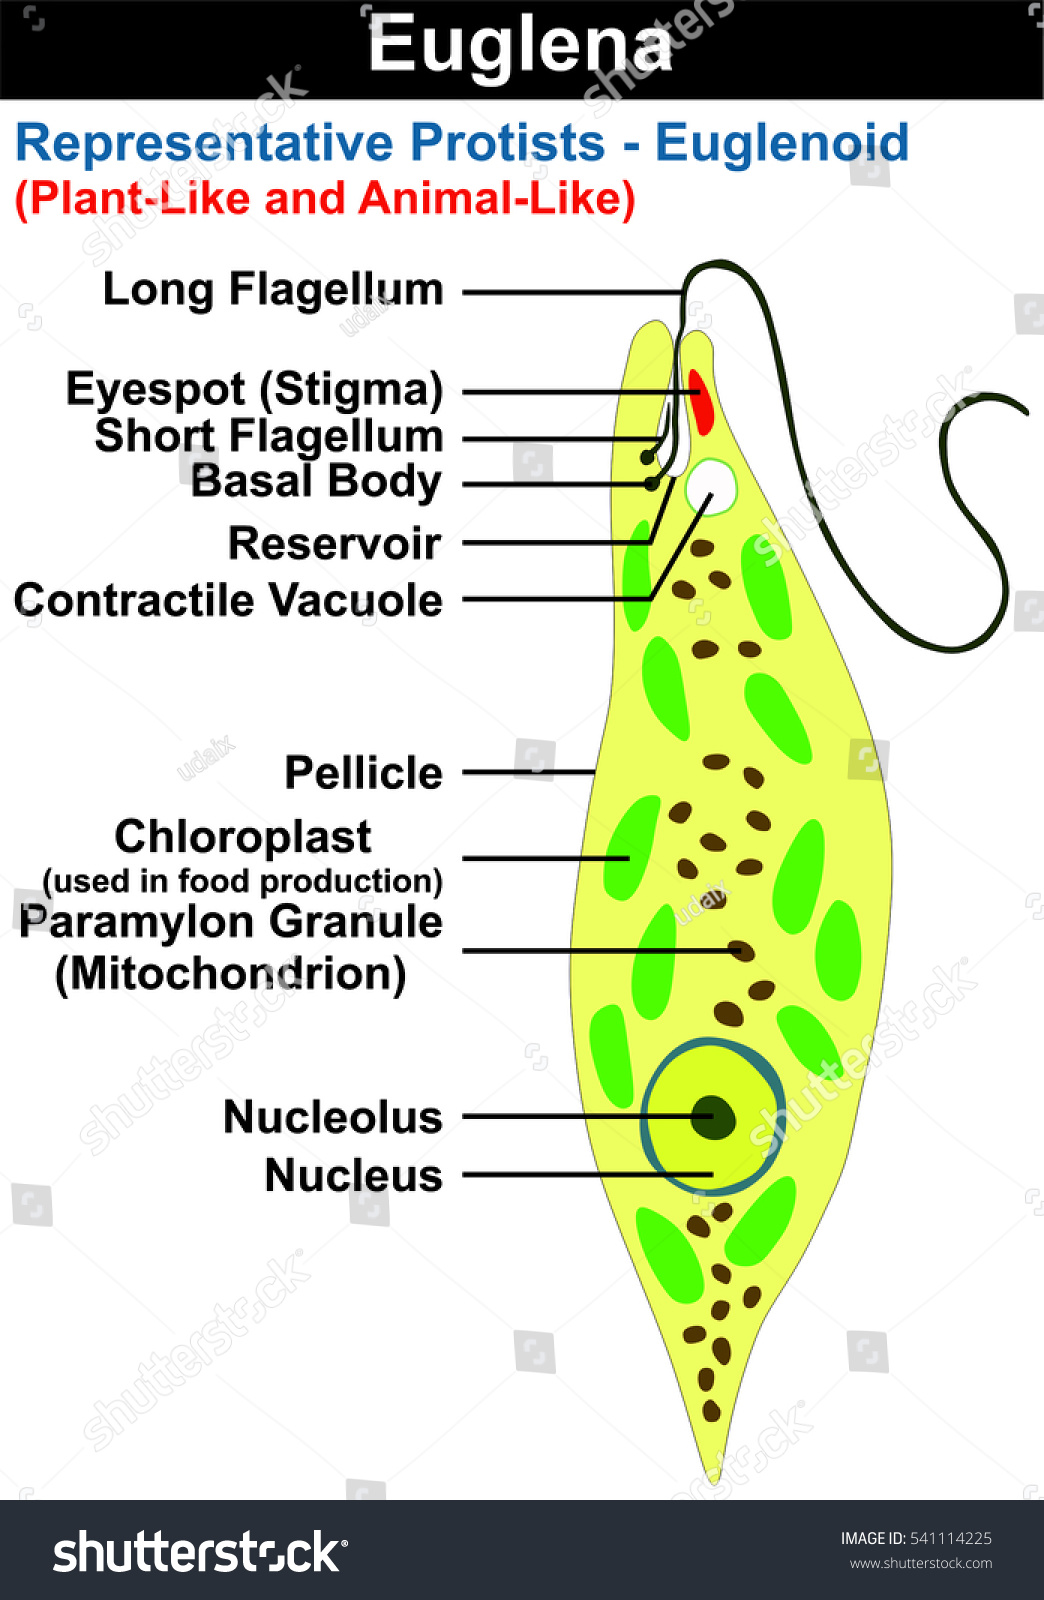 Euglena Cross Section Diagram Representative Protists Ilustración de ...